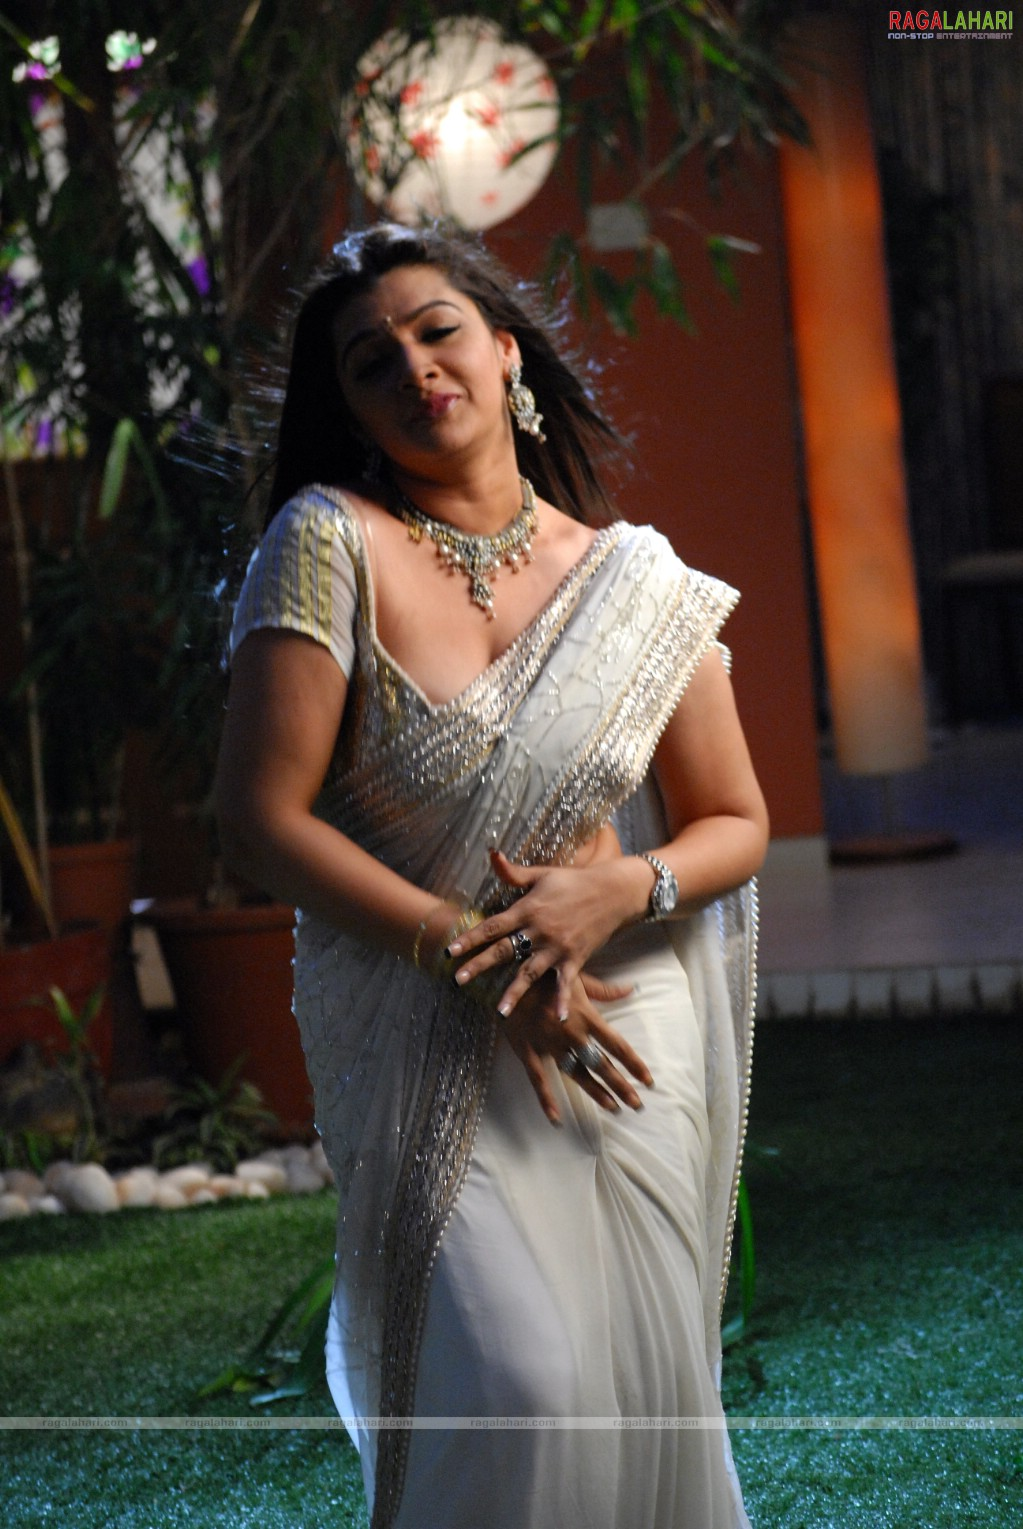 Aarti Agarwal Sexy Clevage Show In Saree Bra Visible